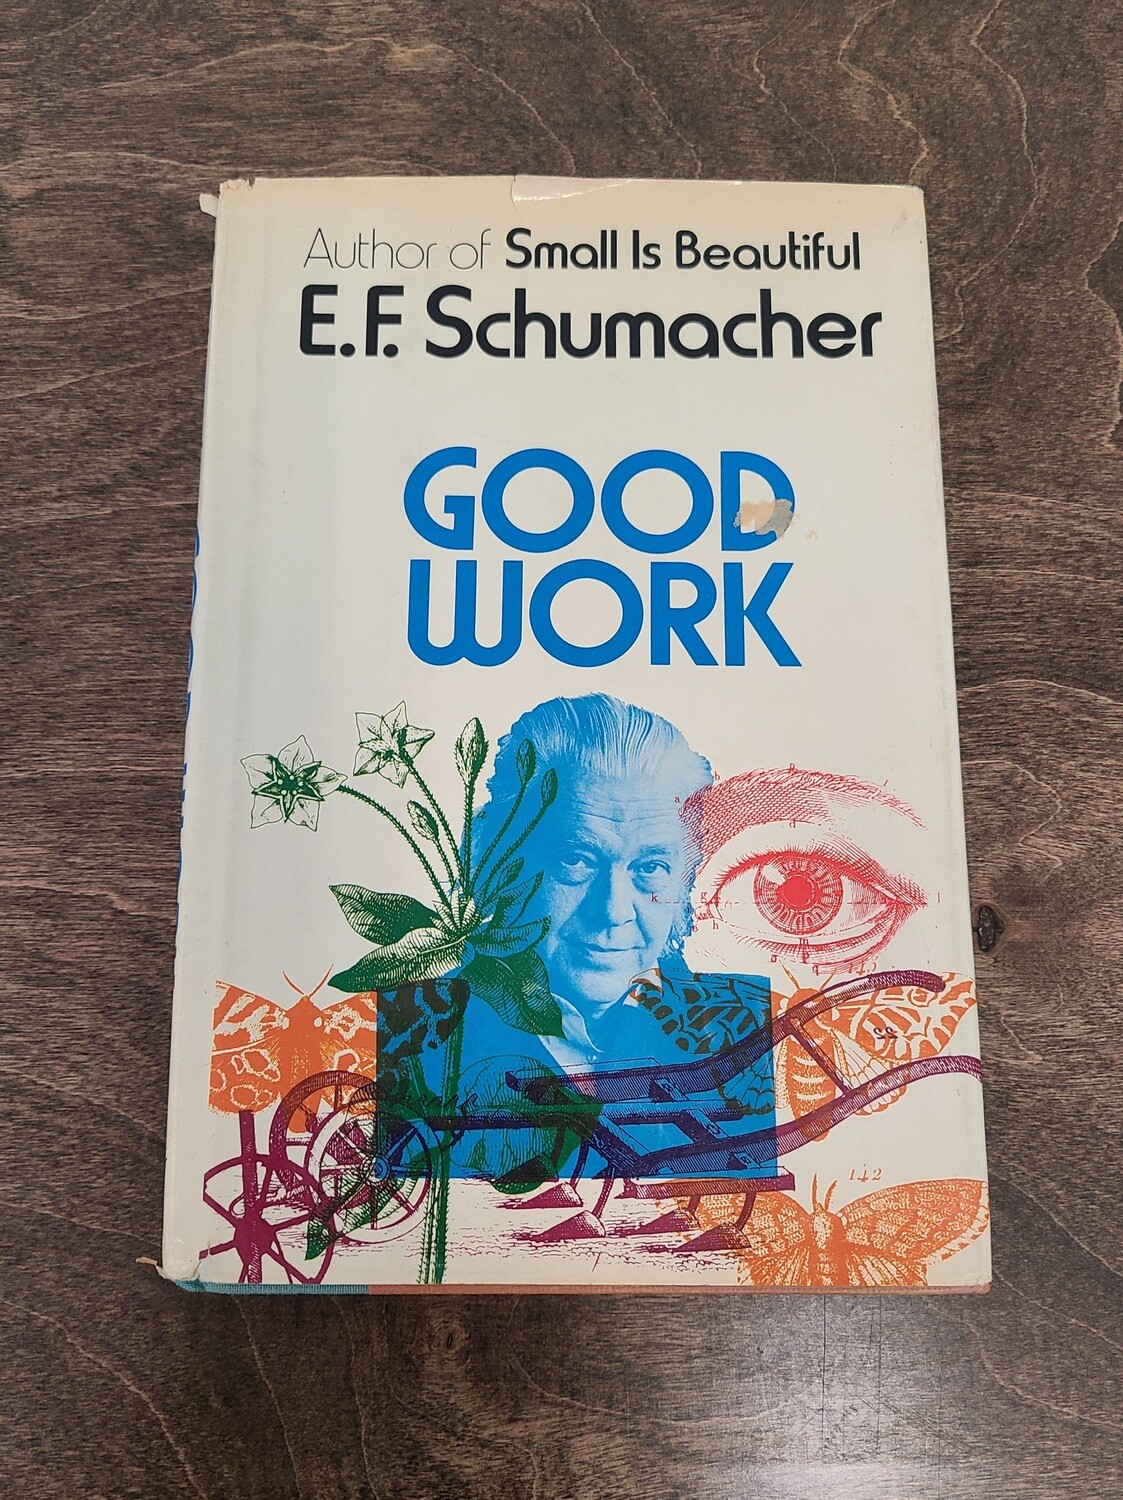 Good Work by E.F. Schumacher